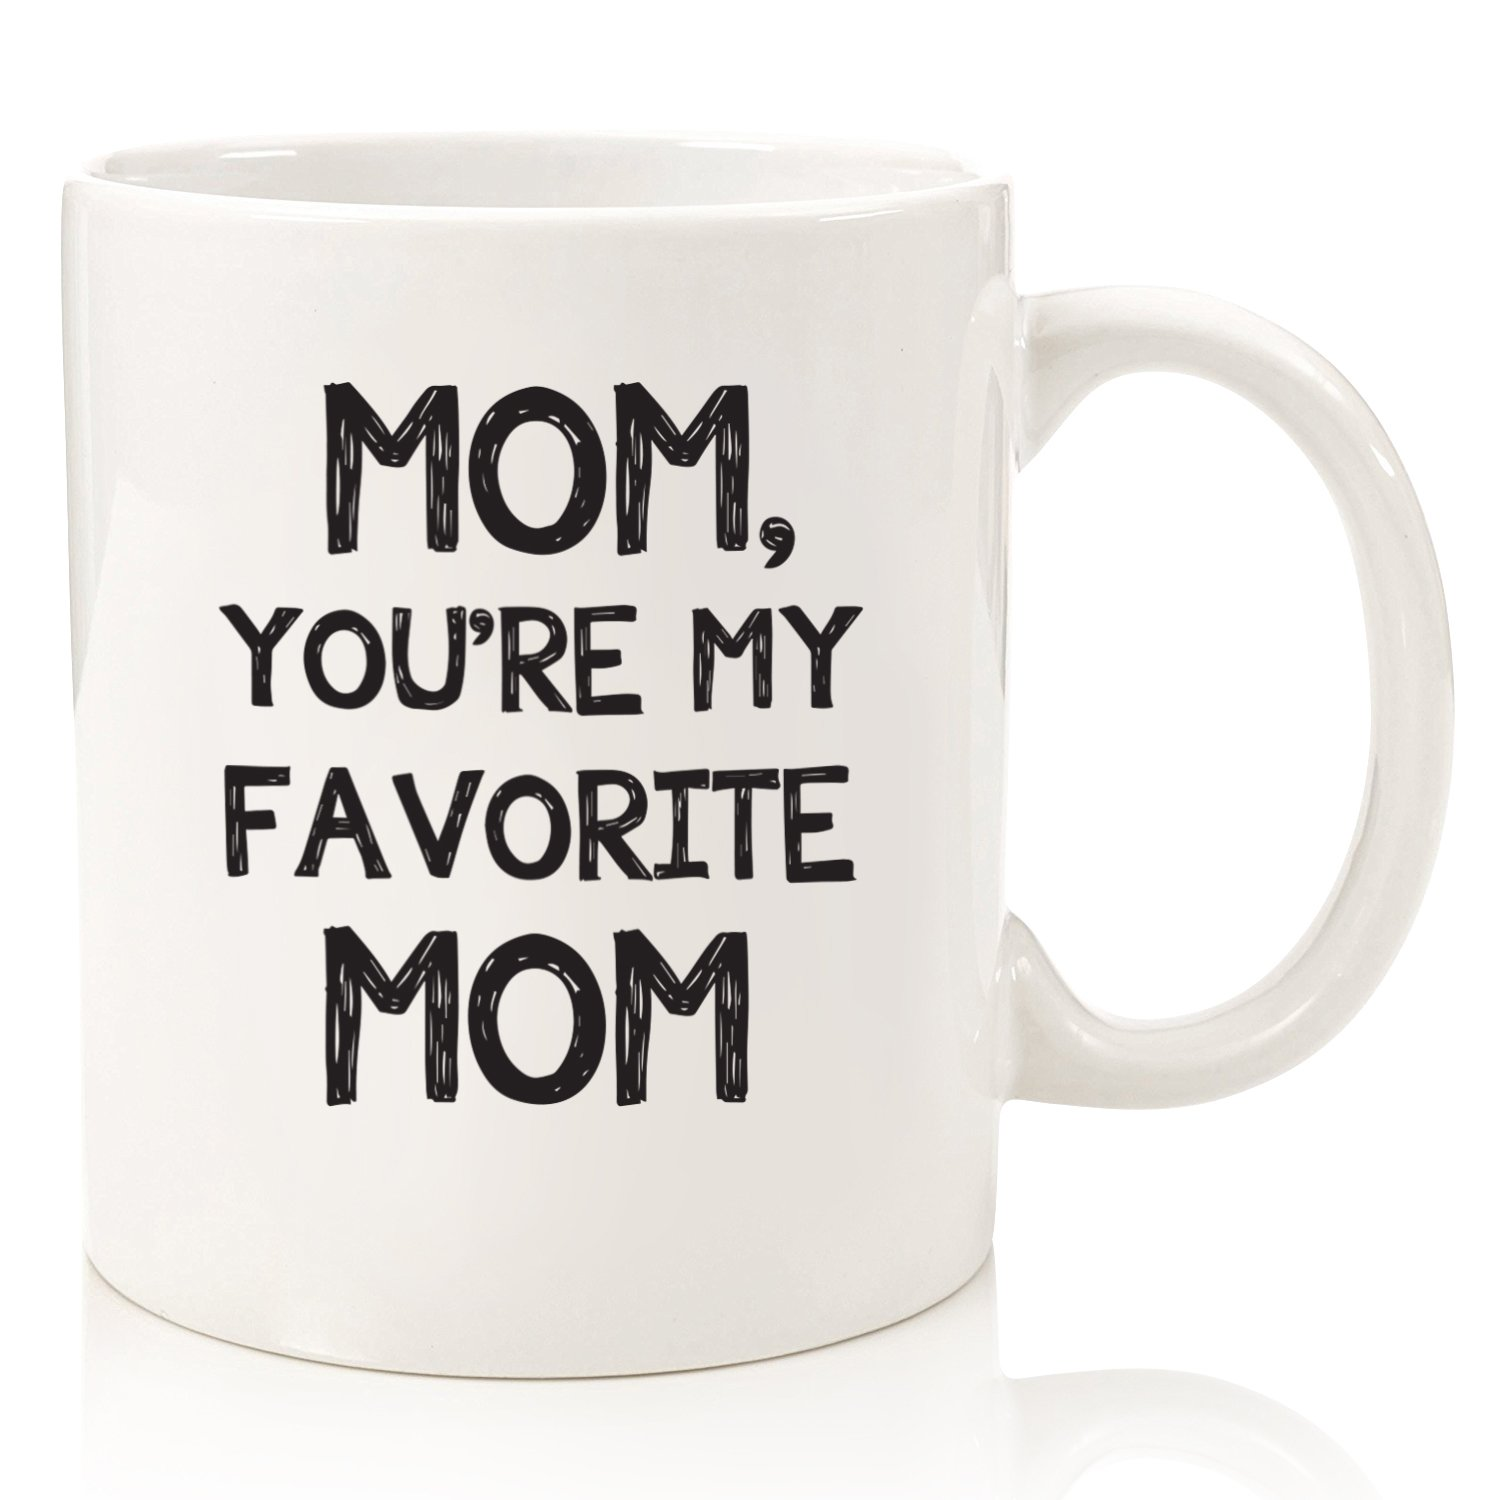 Mom, You're My Favorite Funny Coffee Mug - Best Birthday Gifts For Mom - Unique Gift For Women, Her - Cool Mothers Day Present Idea From Son or Daughter - Fun Novelty Cup - 11 oz